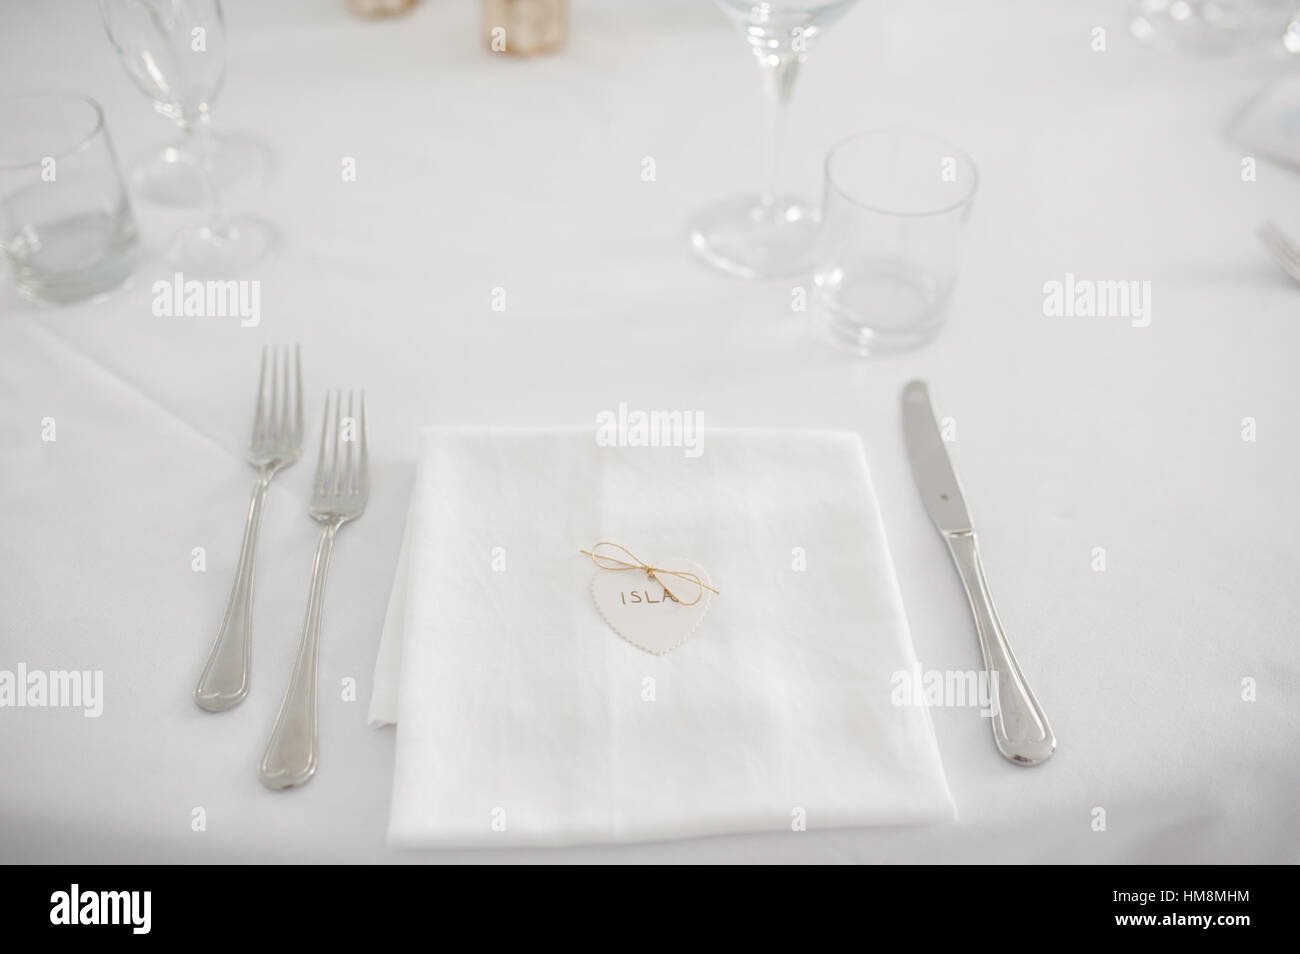 Table set decoration for wedding or event party - Stock Image